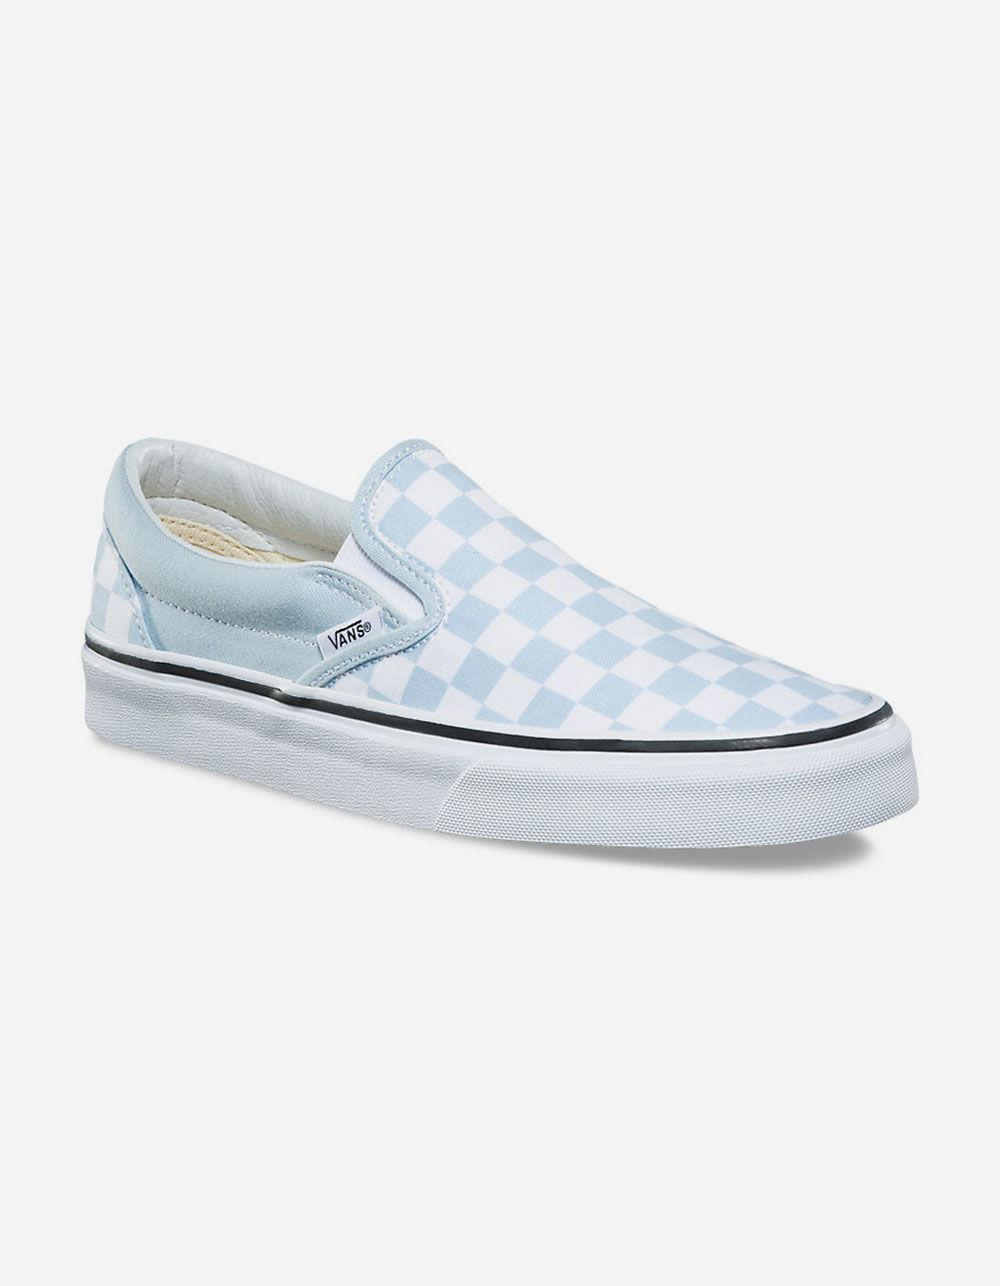 d2b22b4916 Lyst - Vans Checkerboard Baby Blue Womens Slip-on Shoes in Blue